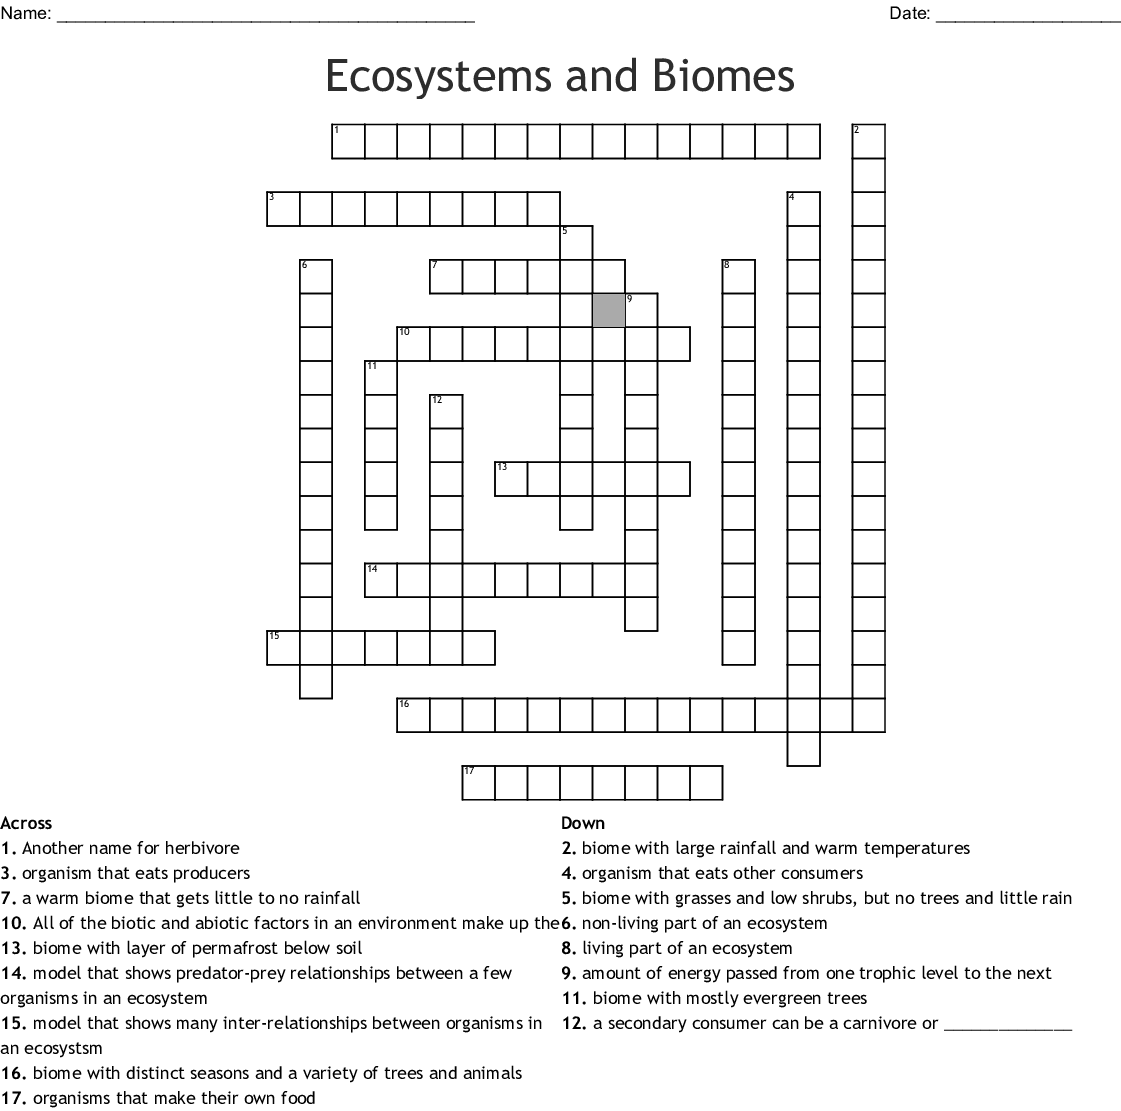 Ecosystems And Biomes Worksheet Answers